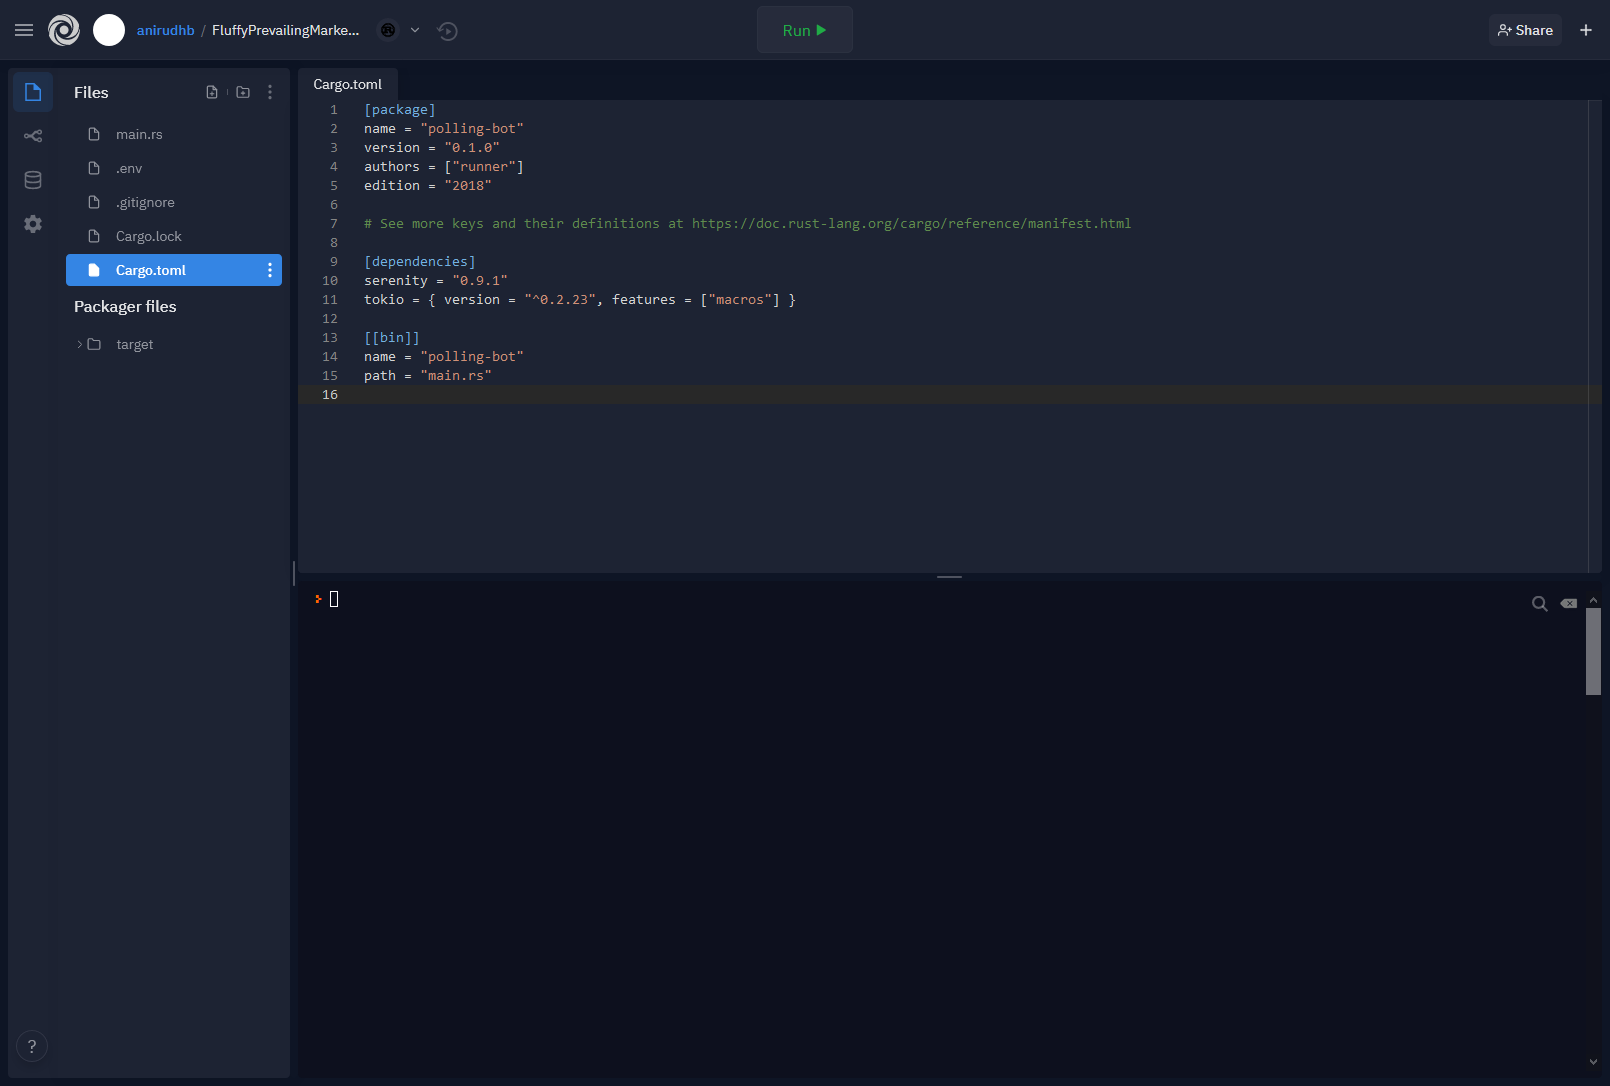 Cargo.toml with Serenity dependency